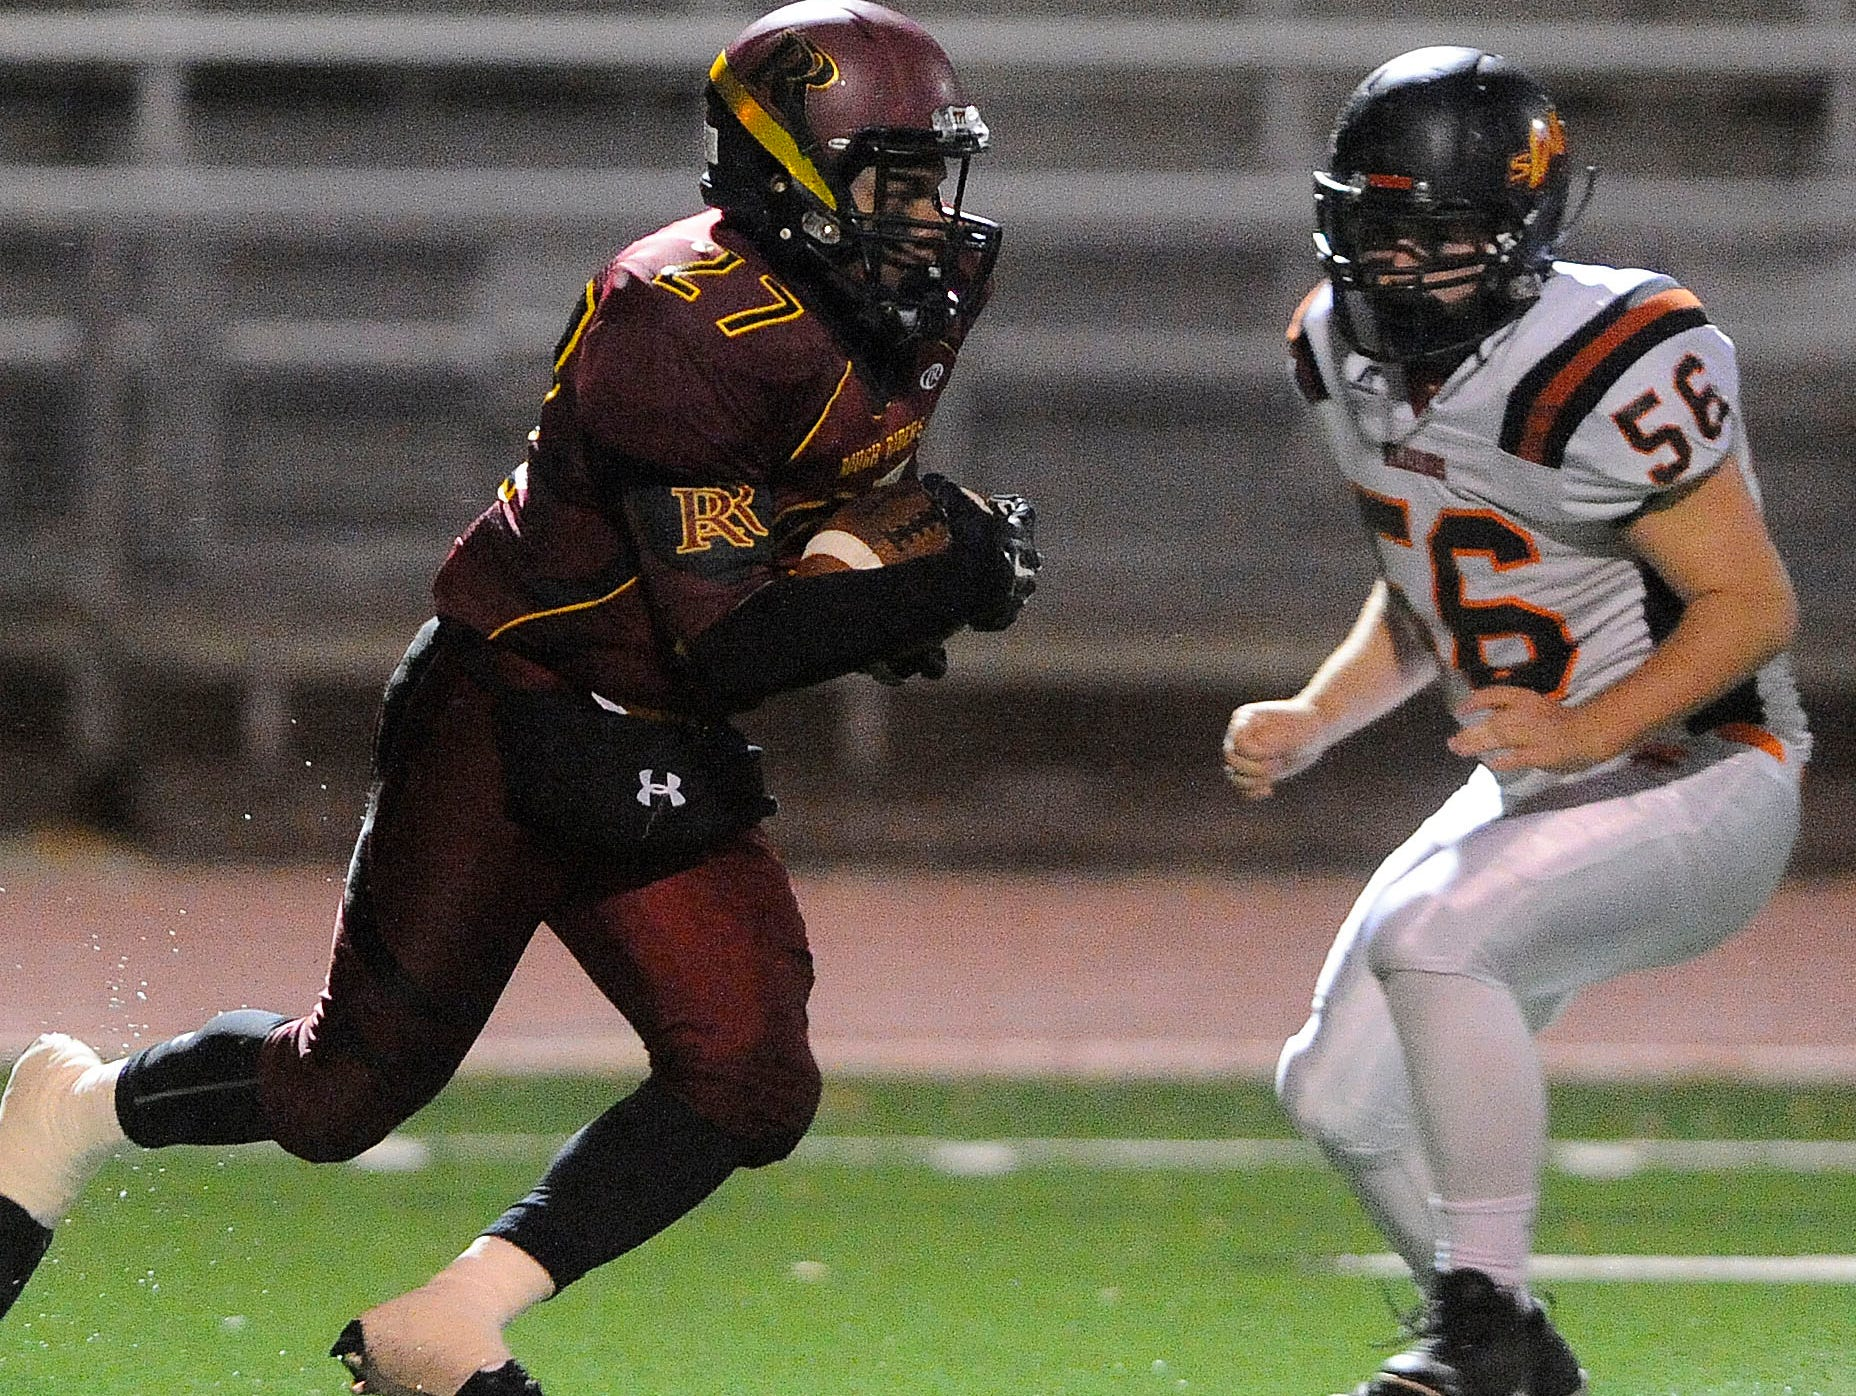 Roosevelt's #27 Tyson Jahn runs down the field against Washington's #56 Thayer Smith during football action at Howard Wood Field in Sioux Falls, S.D., Thursday, Oct. 22, 2015.